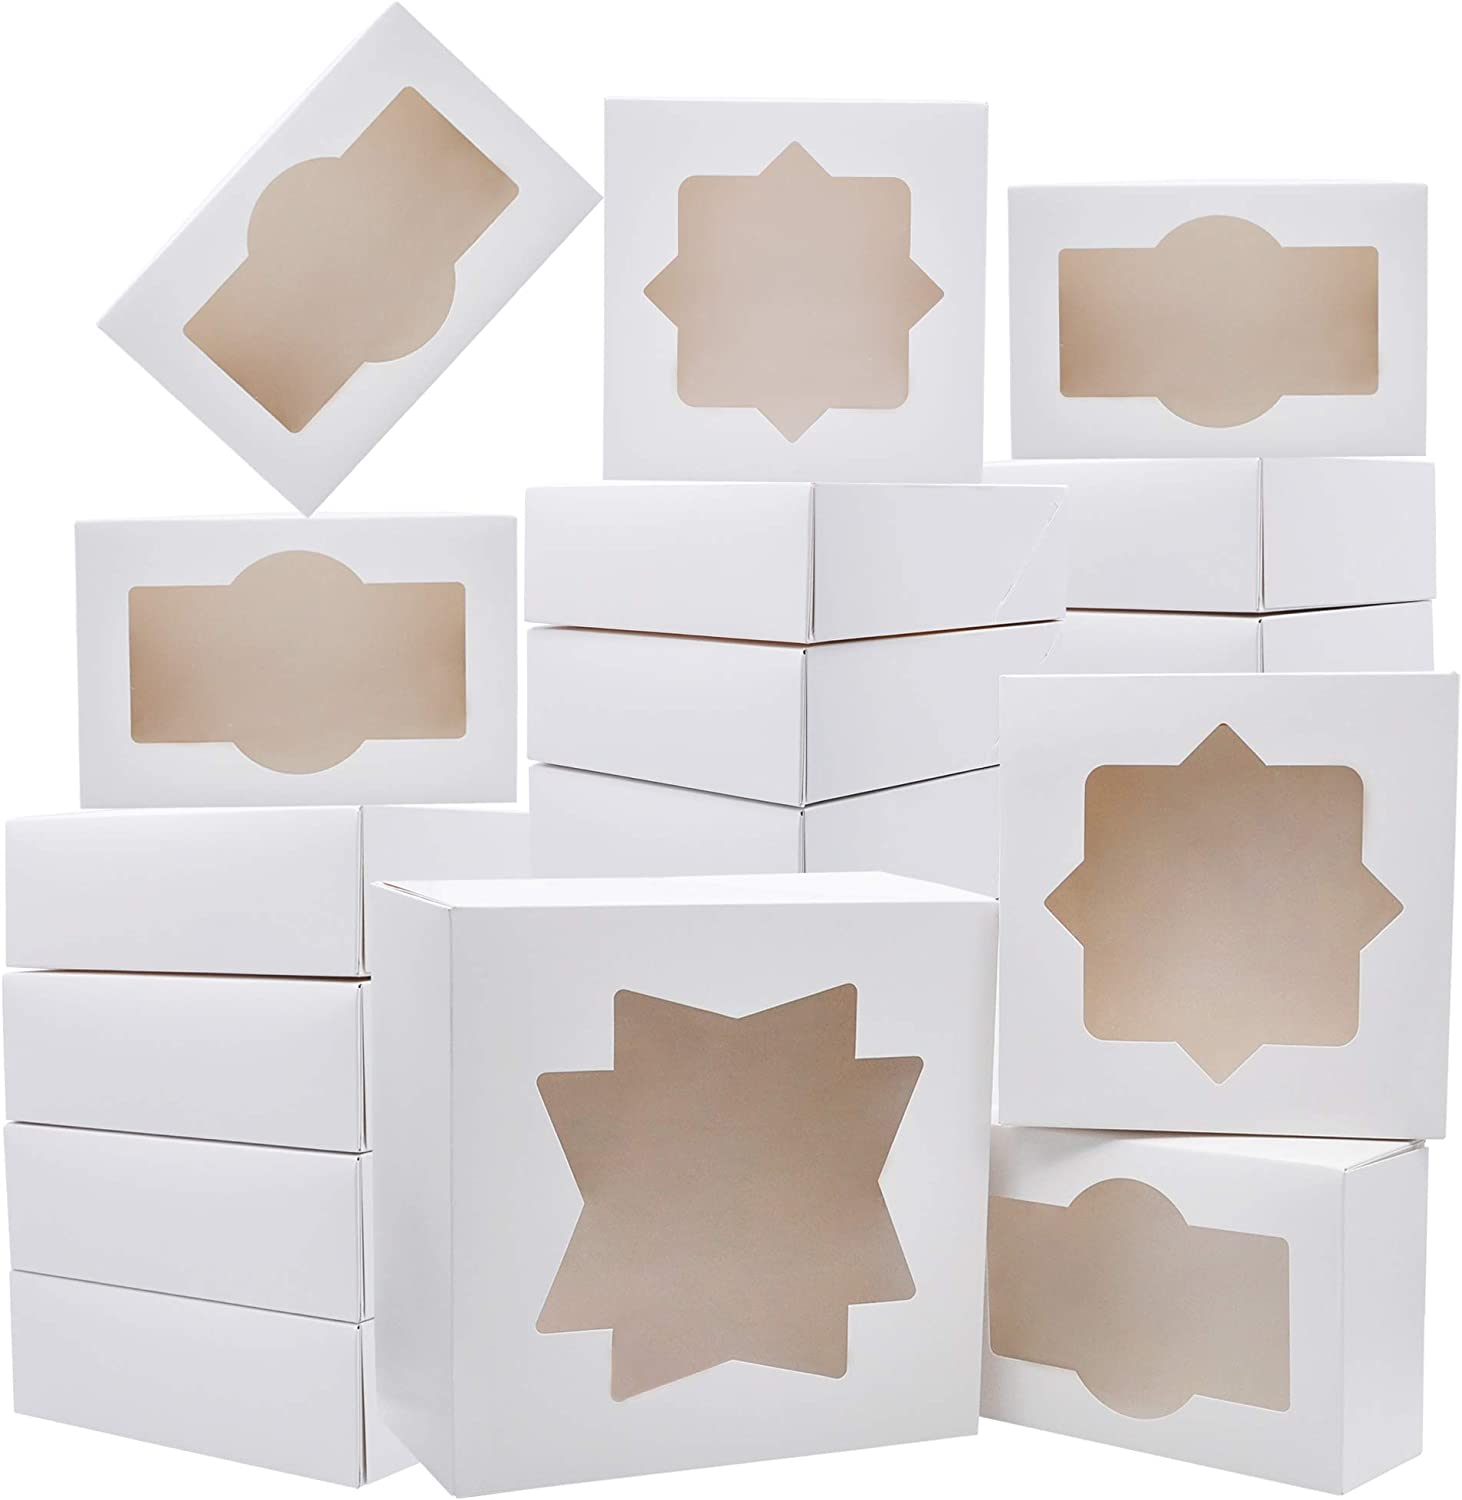 20 PCs 3-Sizes Cardboard Bakery Cookie Boxes Set with Window Auto-Popup for Christmas Cupcakes, Cookies, Brownies, Donuts, Truffles Gift-Giving.